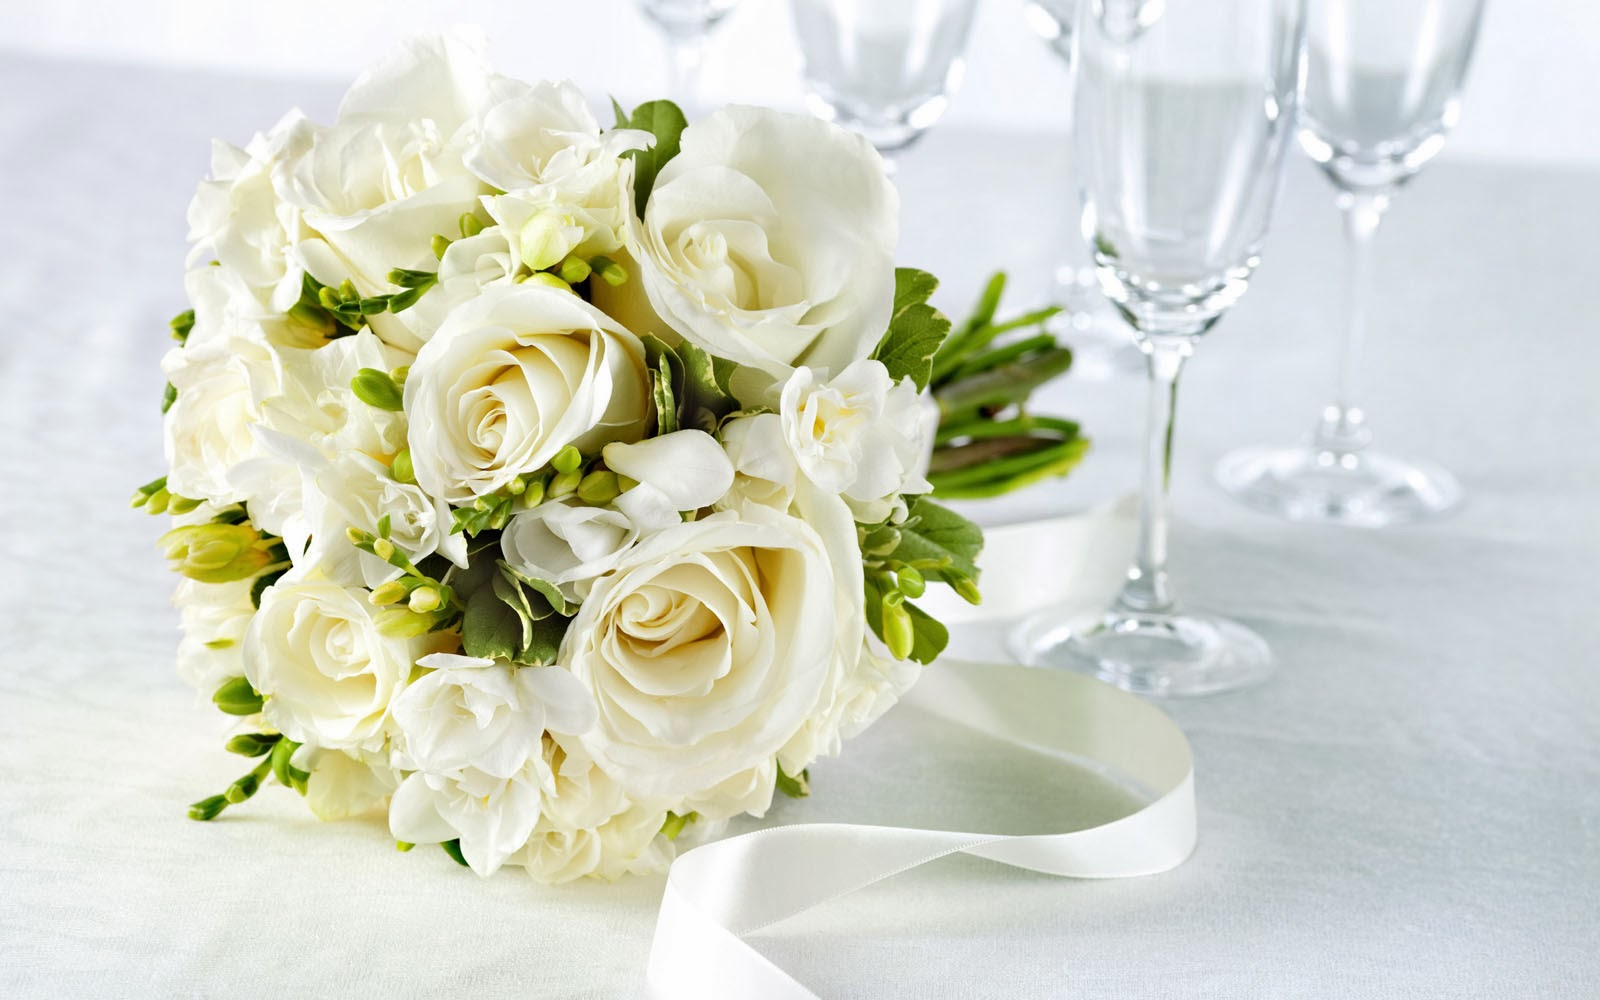 Cute baby hd wallpaper white rose bouquet wallpapers white rose bouquet wallpapers izmirmasajfo